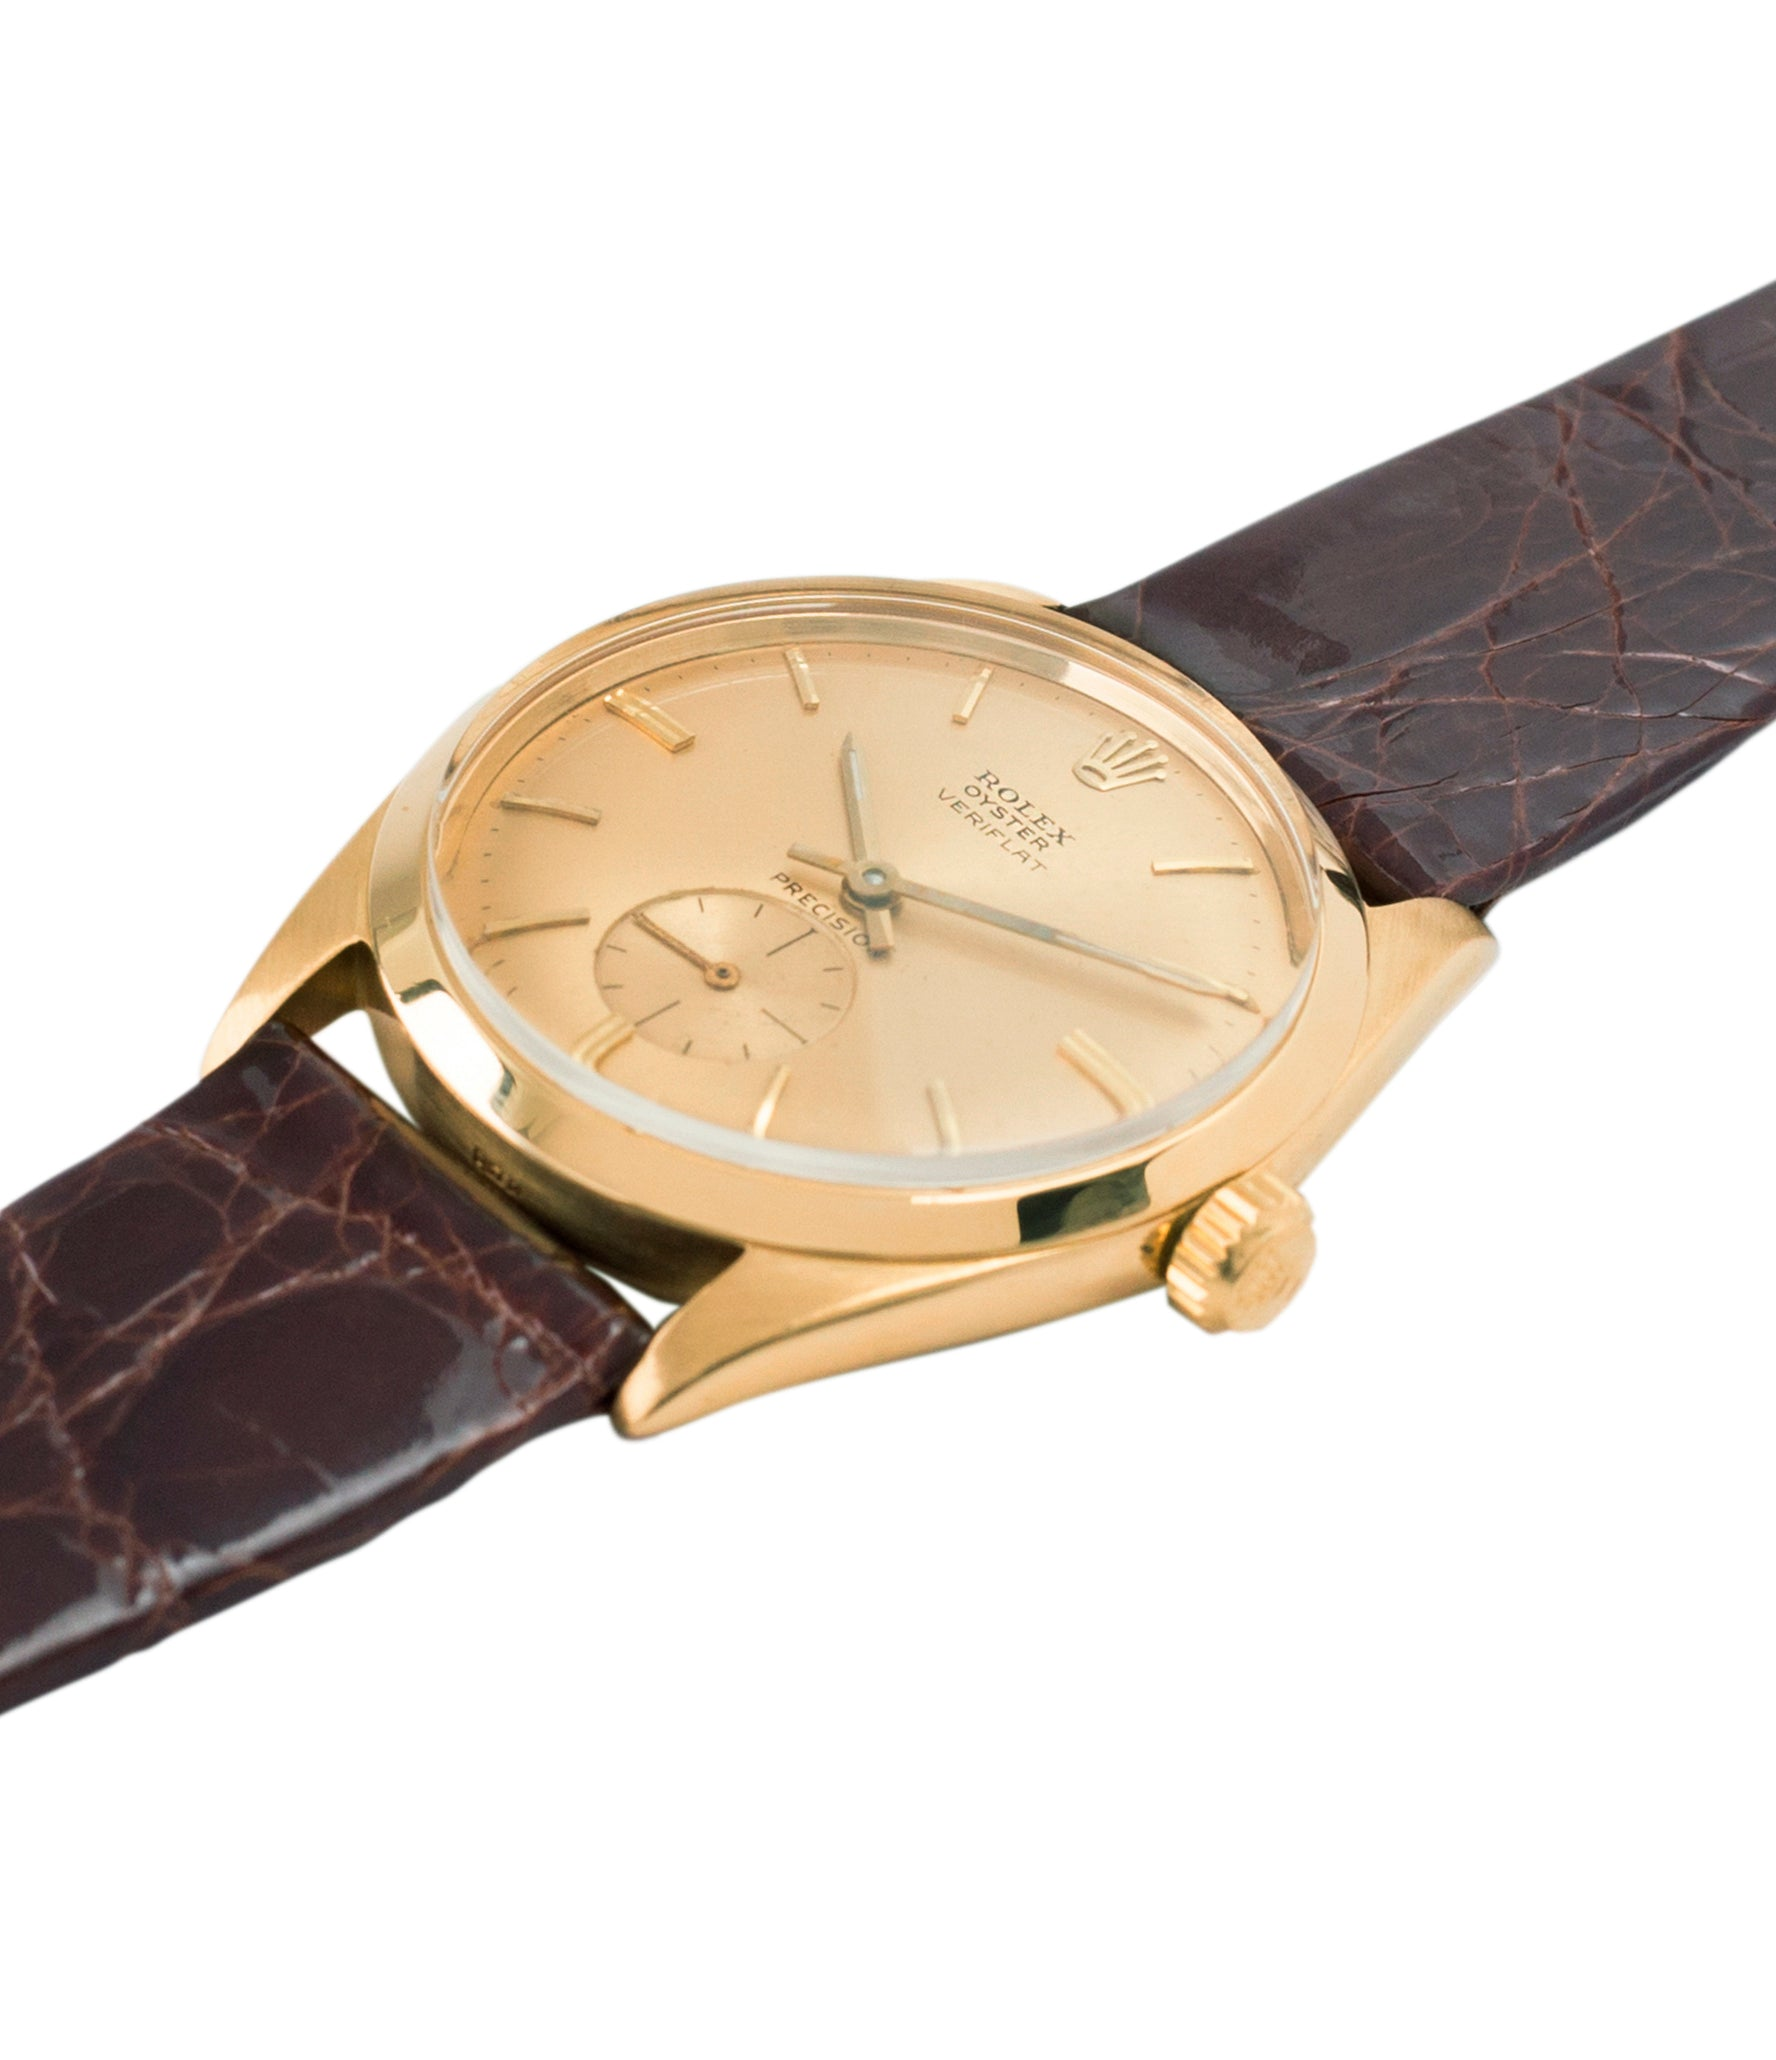 selling Rolex Veriflat 6512 yellow gold rare dress watch for sale online at A Collected Man London vintage watch specialist UK